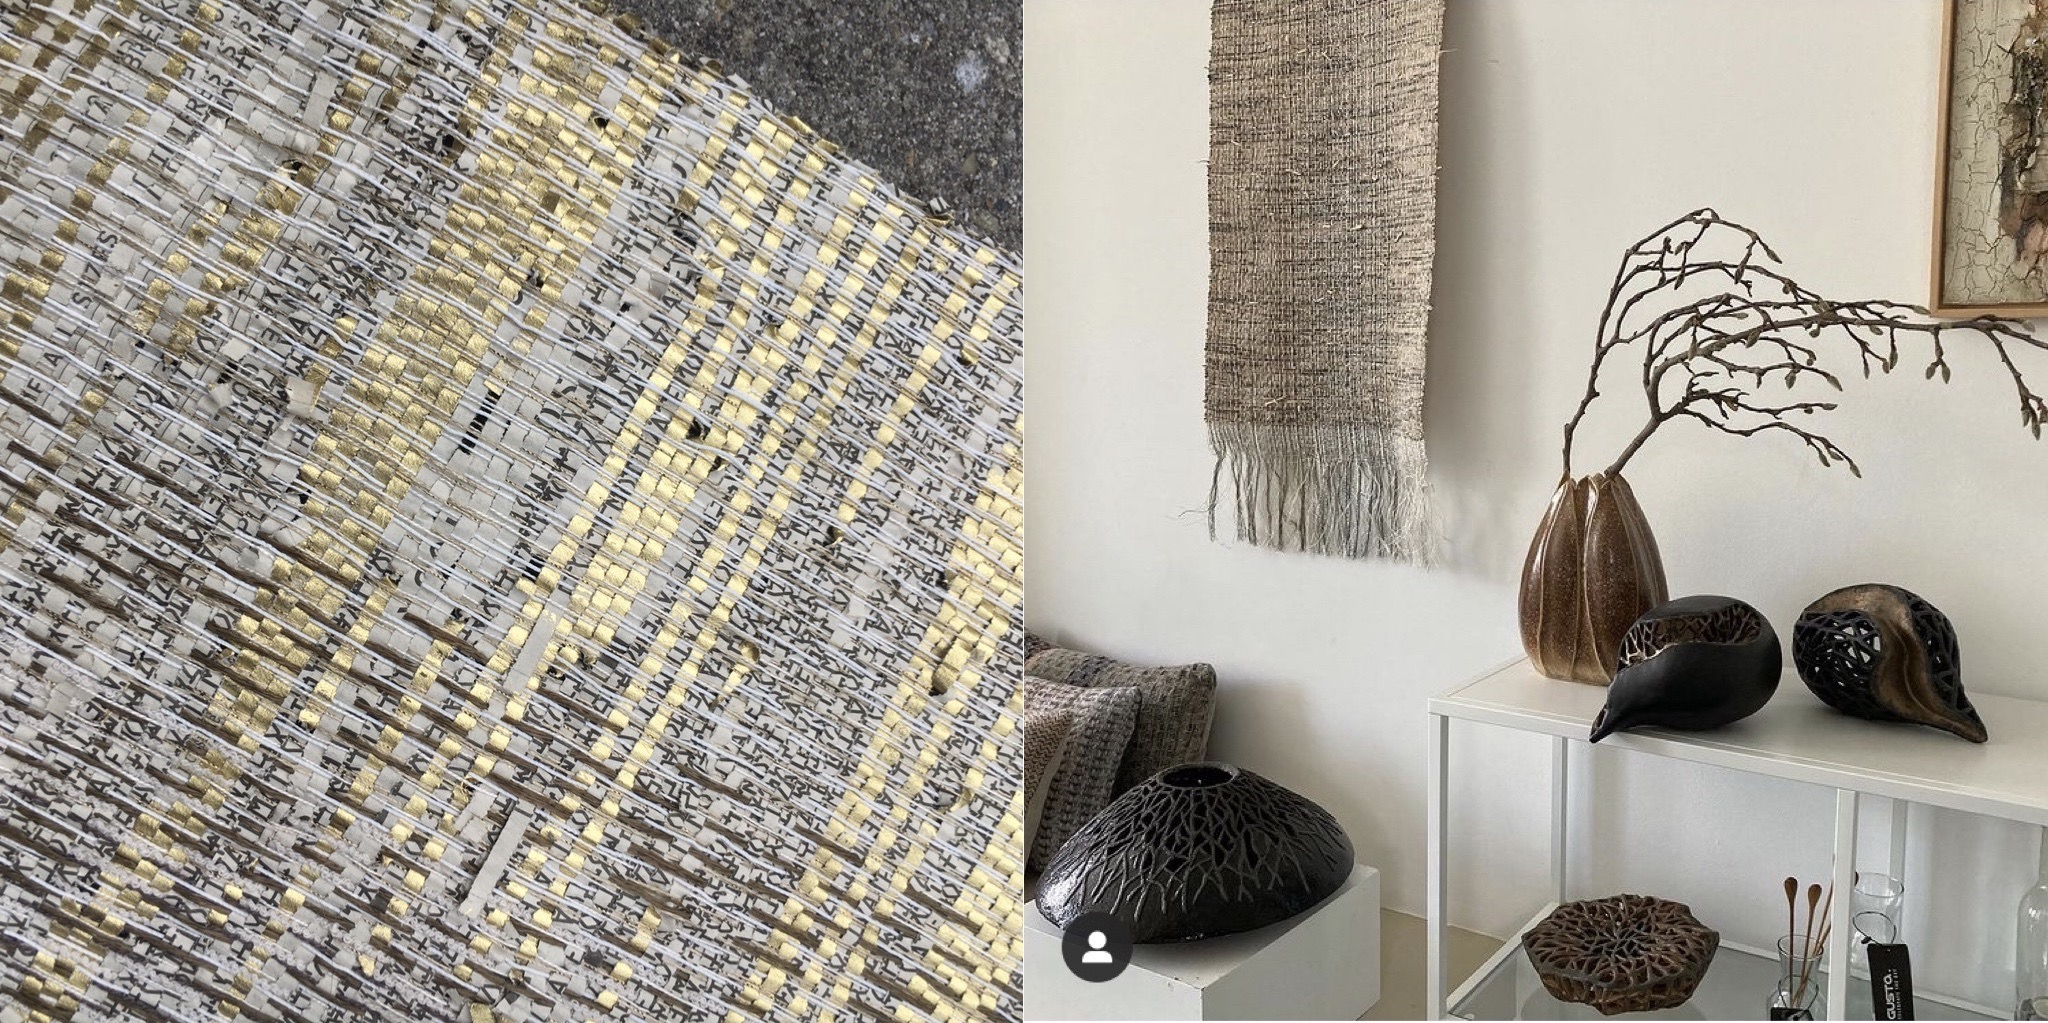 Handwoven vintage newspaper and interior showing woven wallhanging